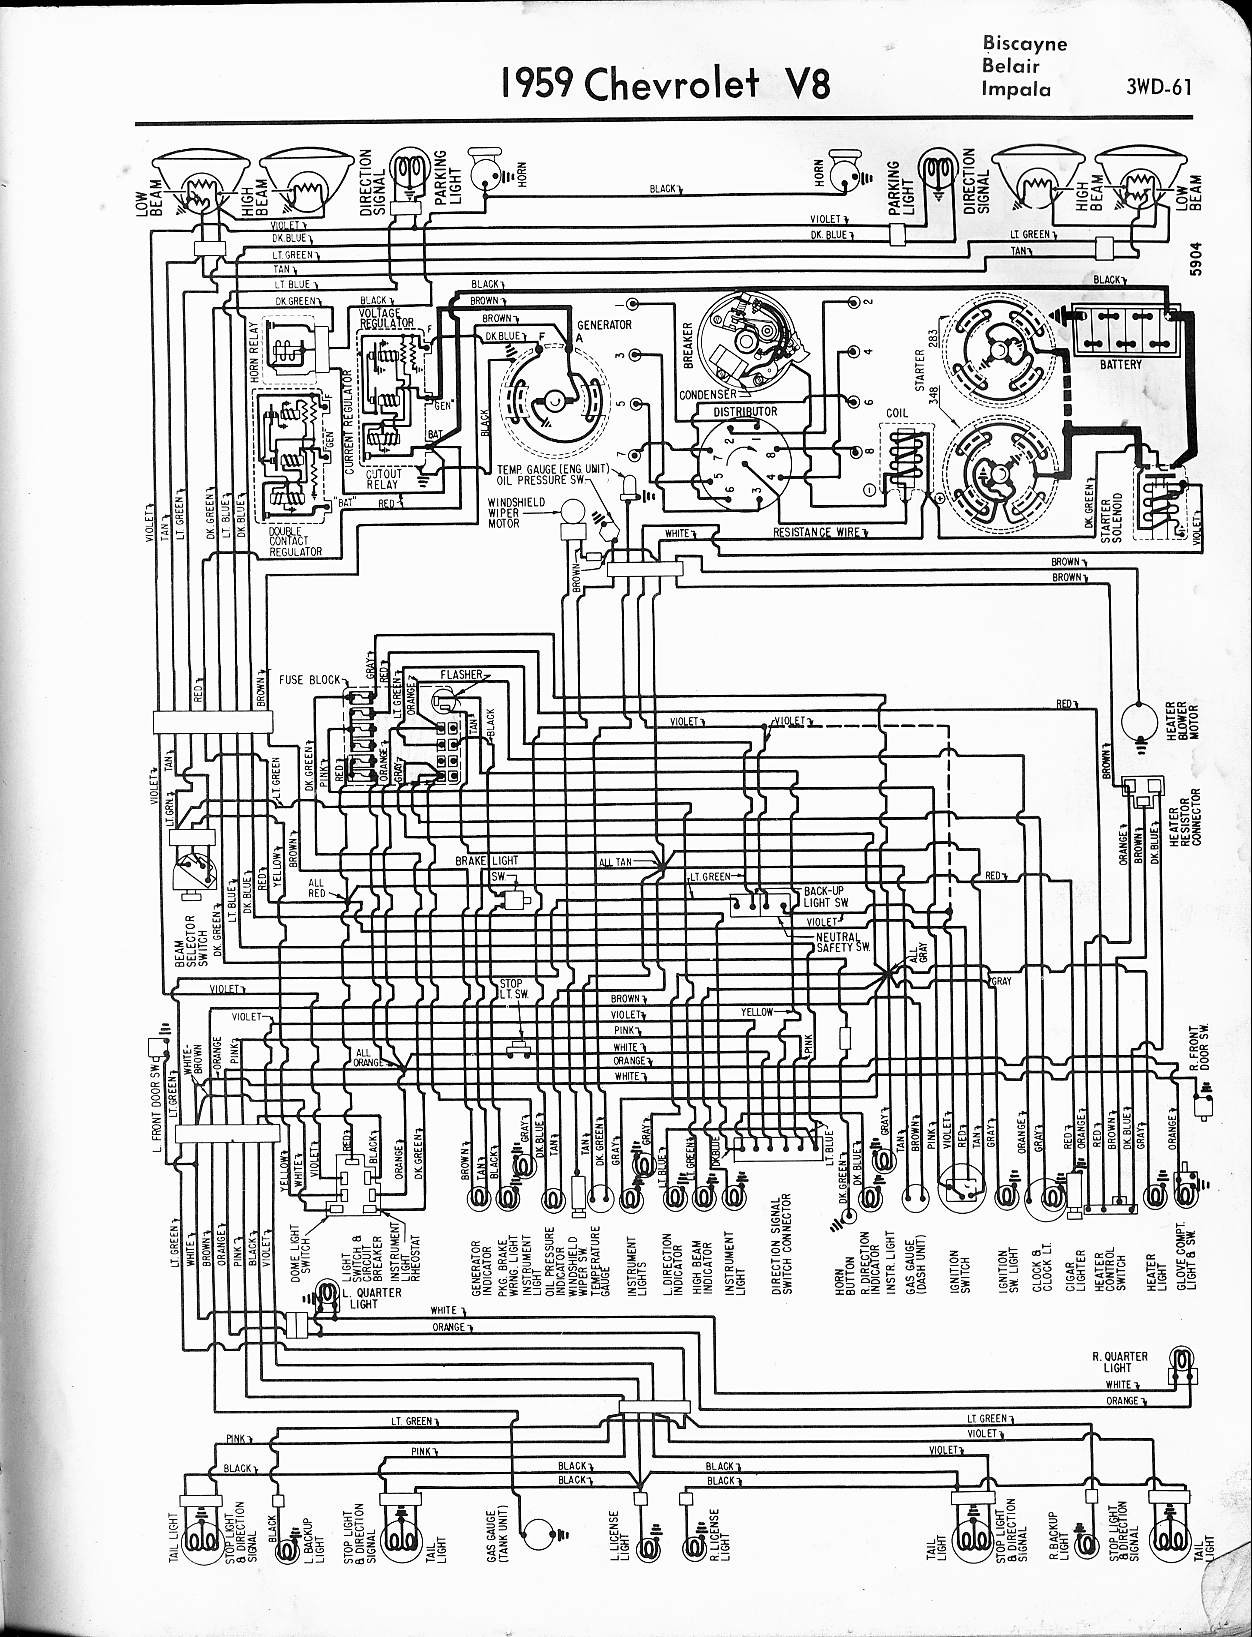 fuse diagram for 1959 chevy impala machine repair manual 1959 Chevy Impala Wiring Diagram 1959 chevy impala wiring diagram